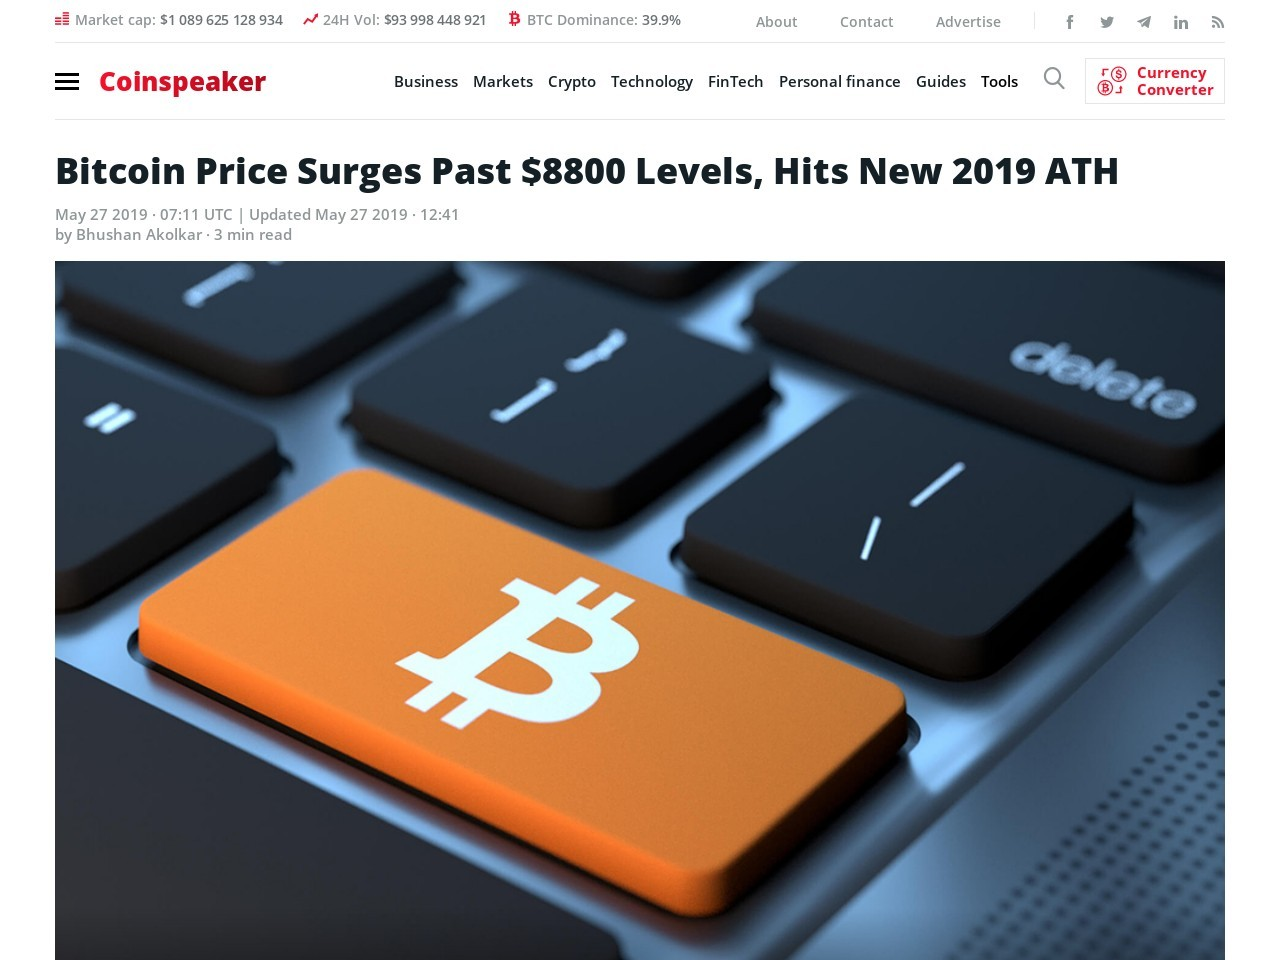 Bitcoin's Price Surges Past $8800 Levels, Starts the Week With a Bang